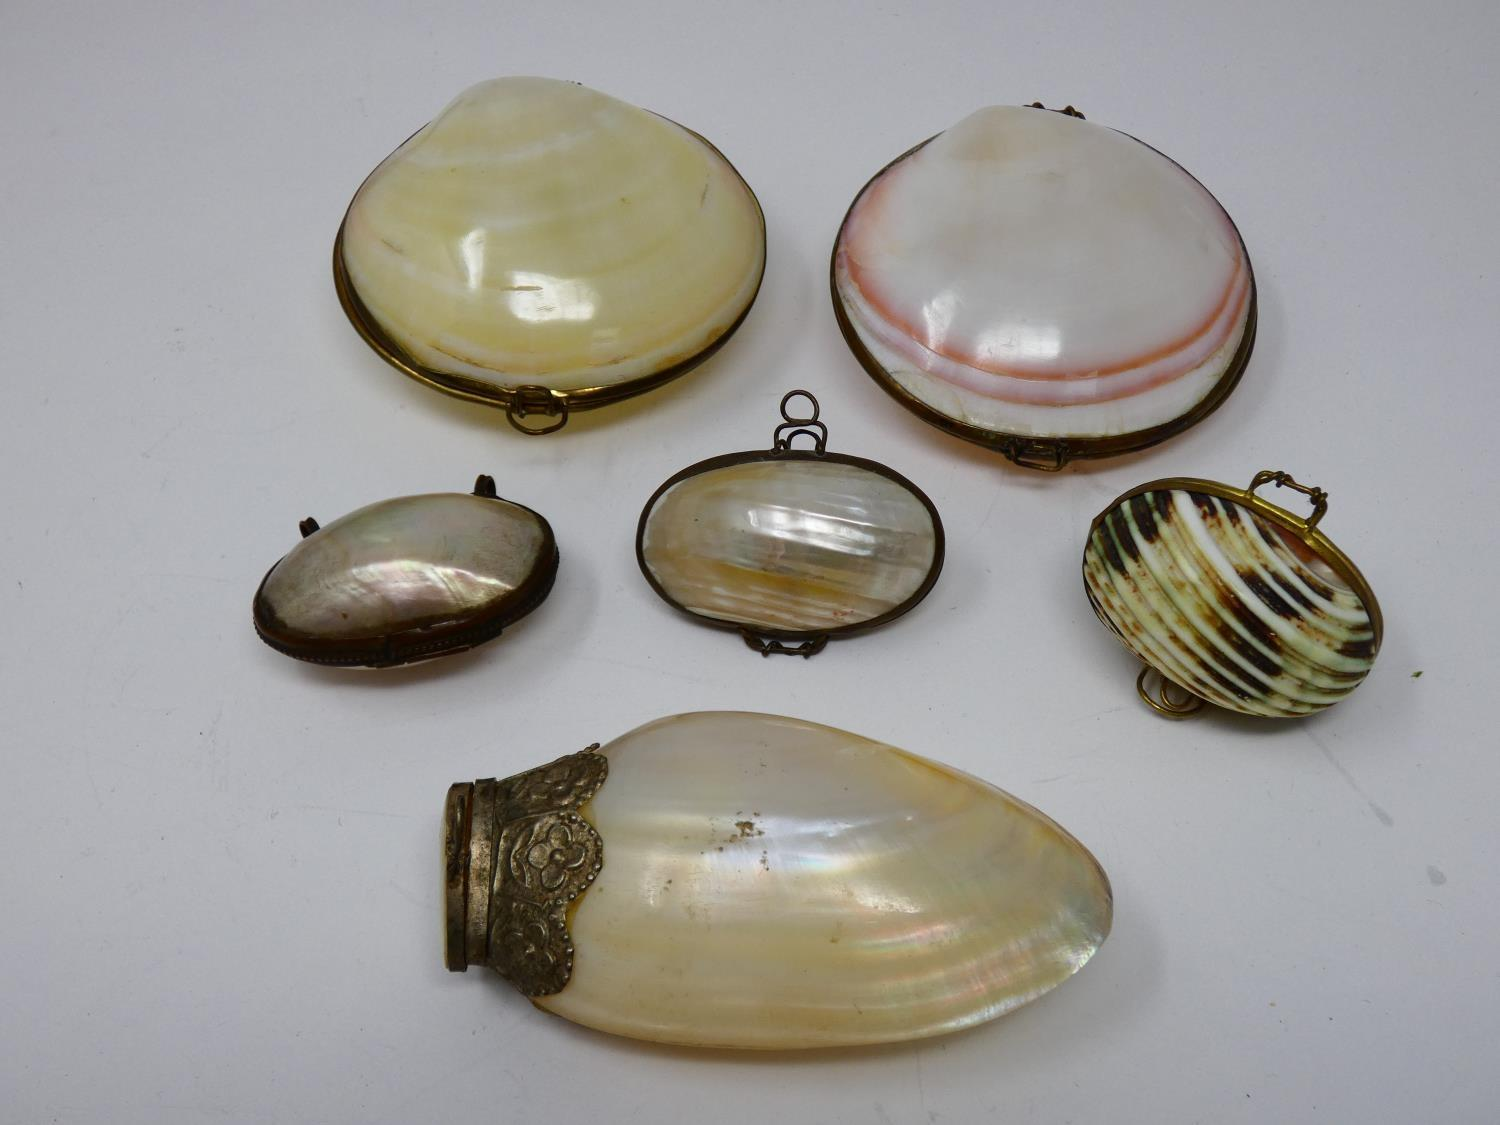 A collection of sea shell trinket boxes, three made from clam shells and three made from sections of